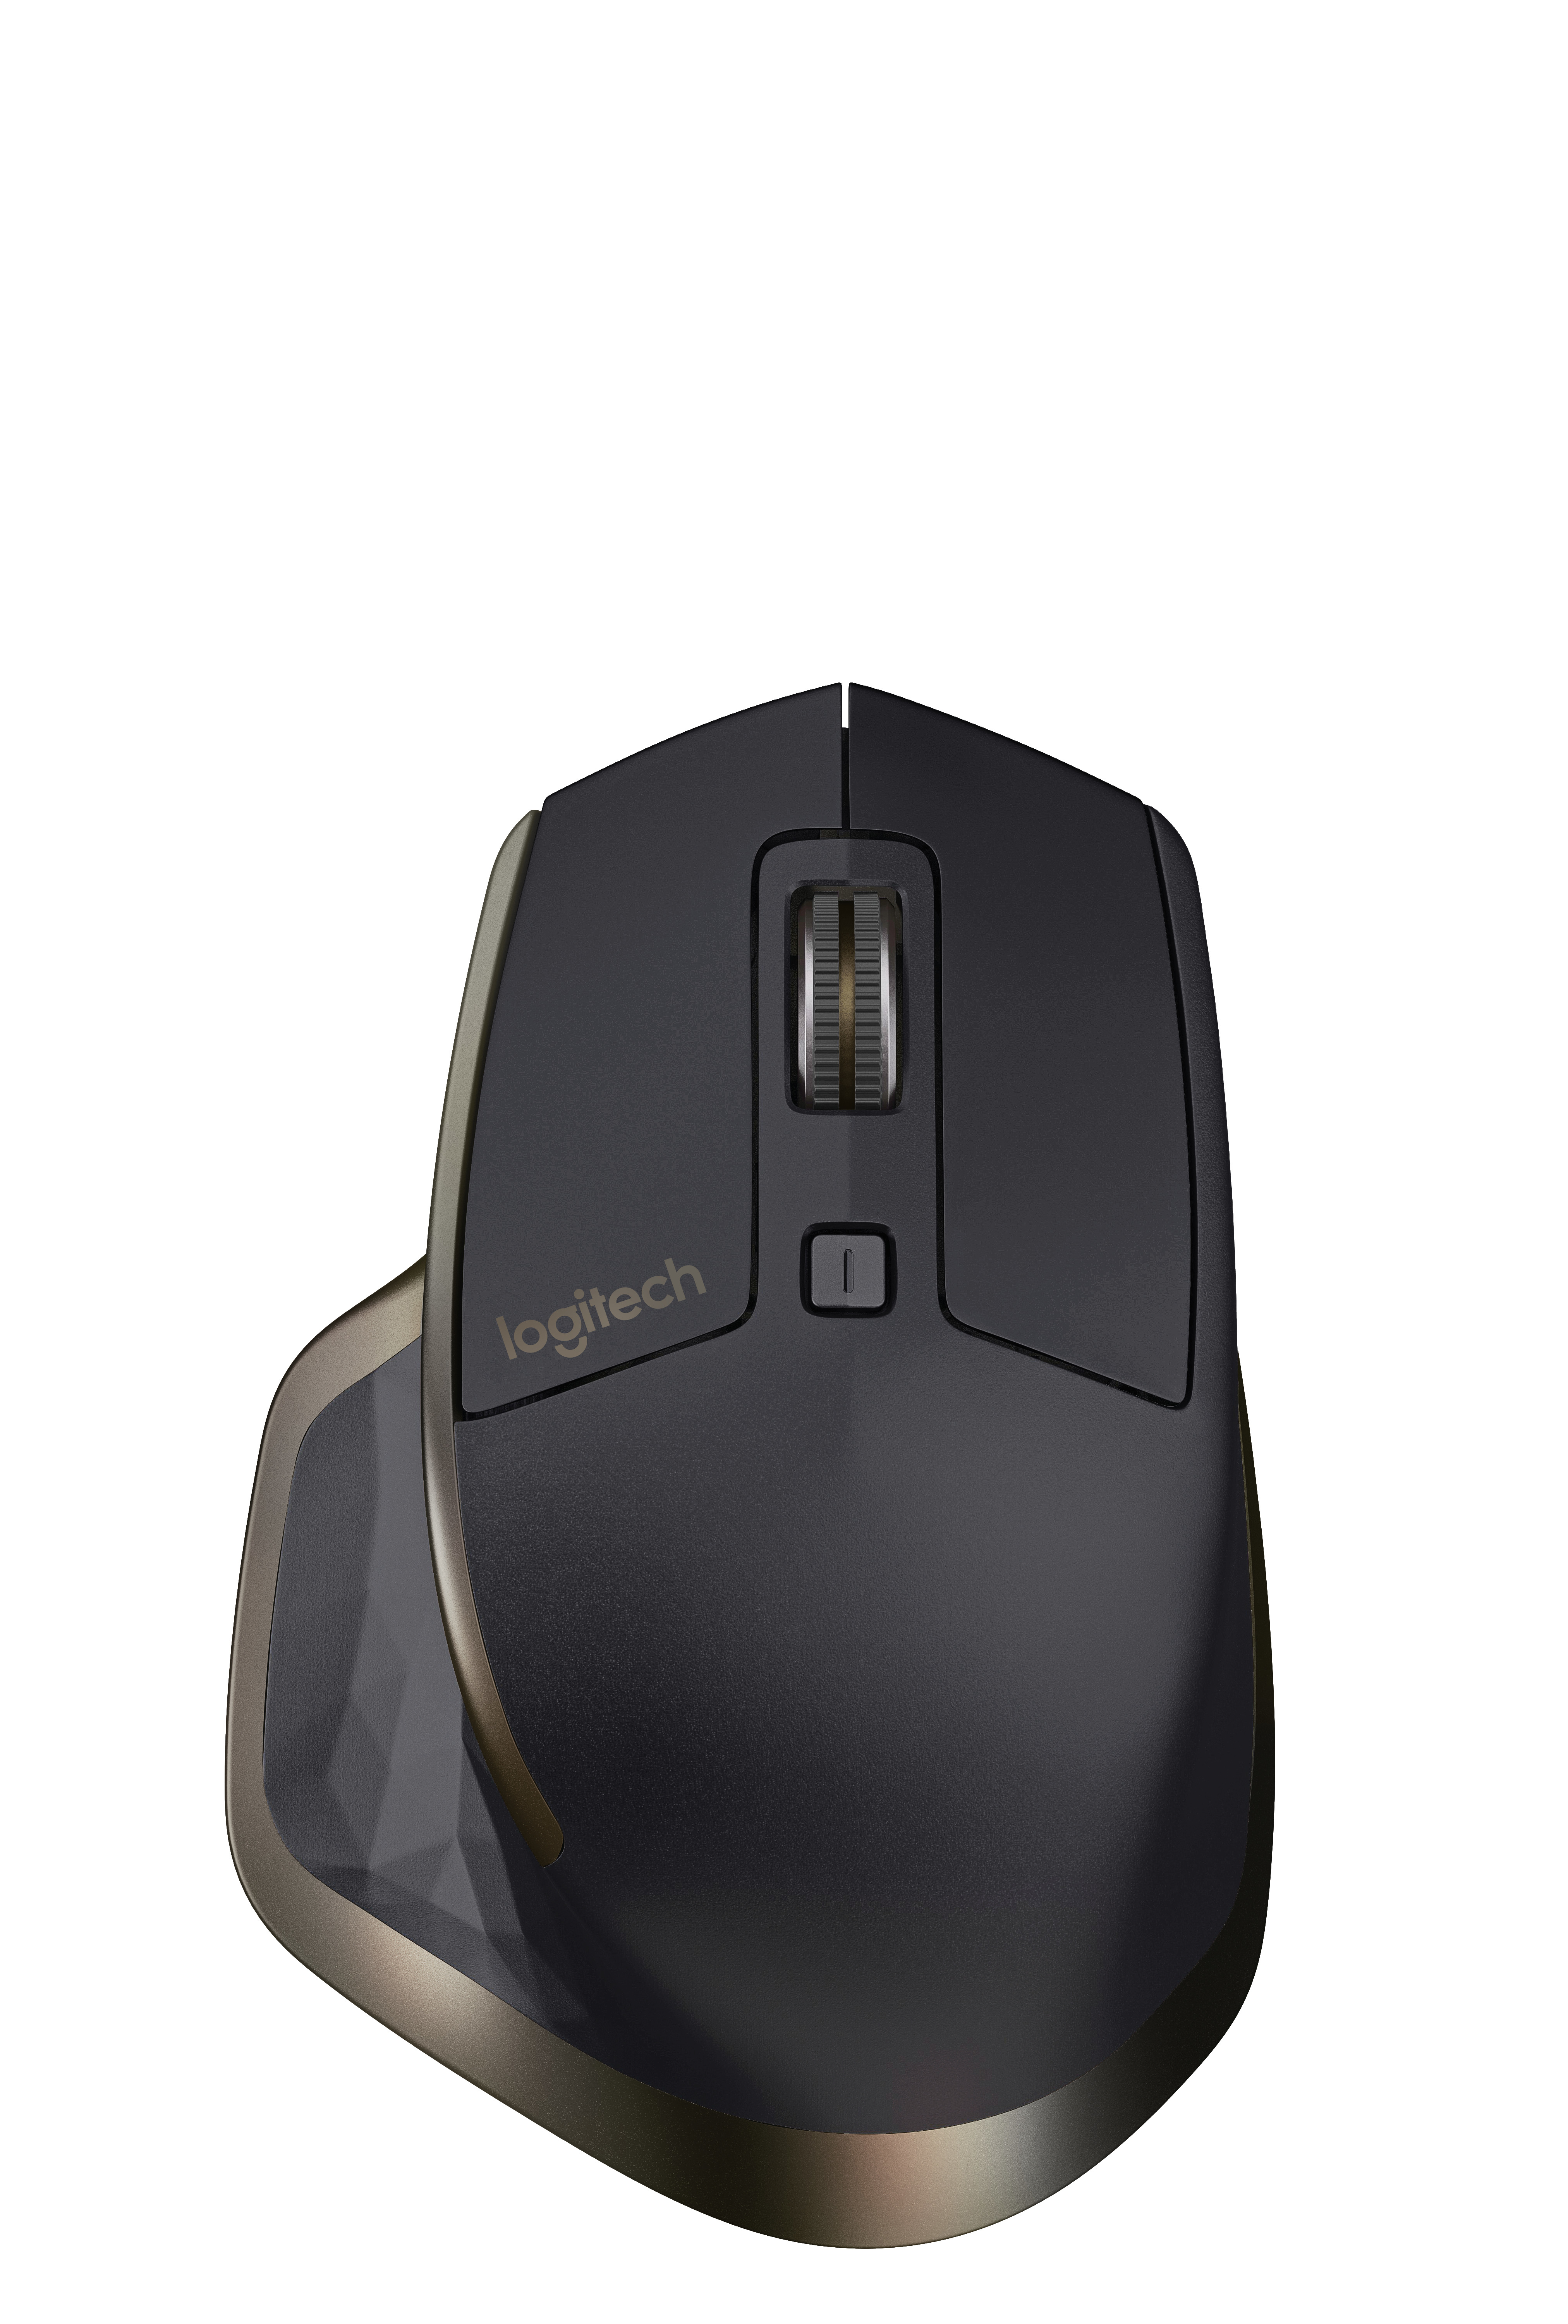 Logitech - Input Devices         Mx Master Wireless Mouse - Emea     In                                  910-005213